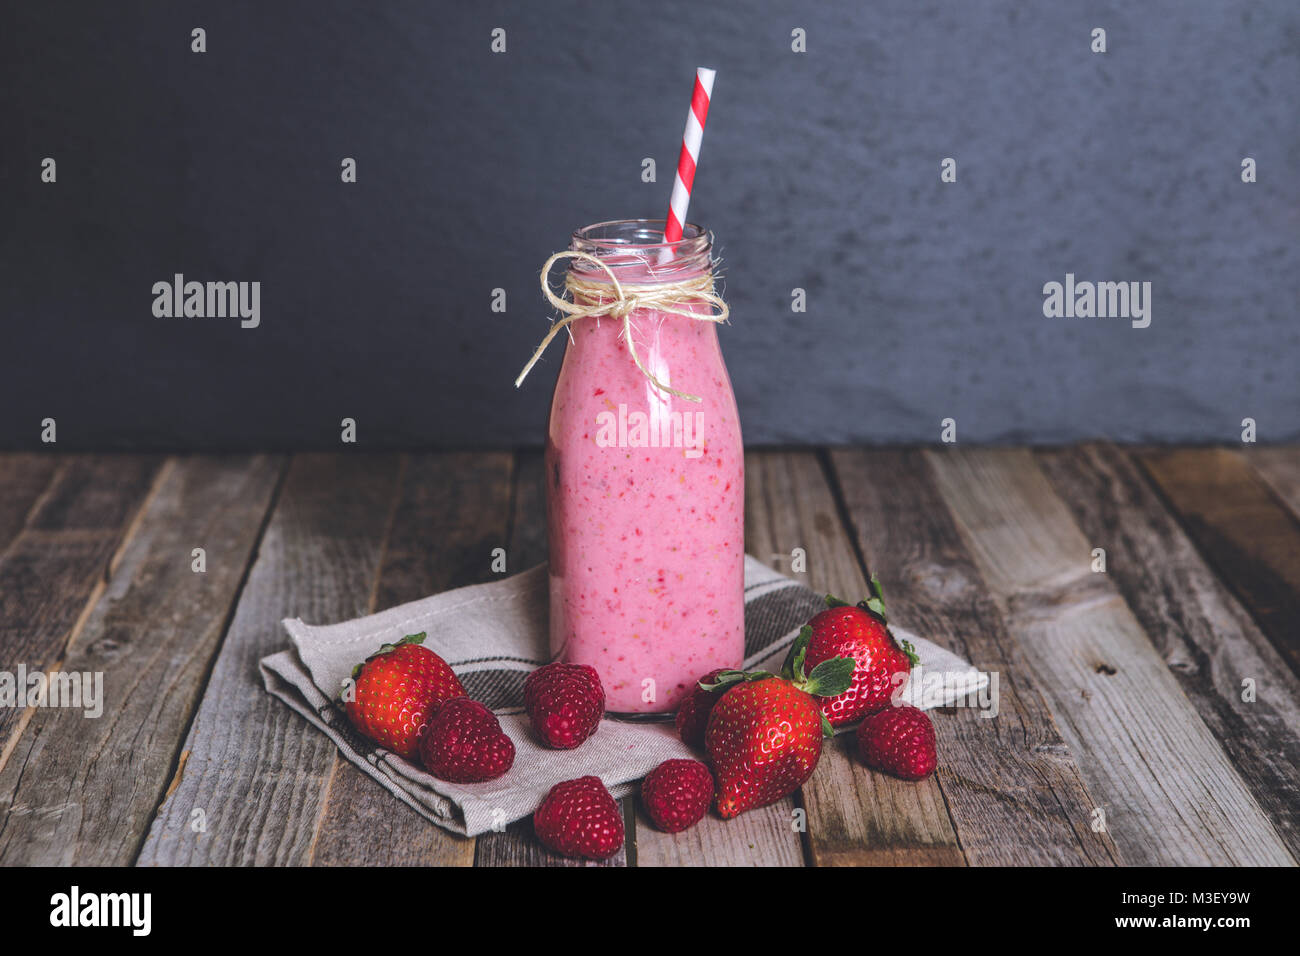 Glass of delicious berry smoothie on wooden background. Tabletop, front view. - Stock Image